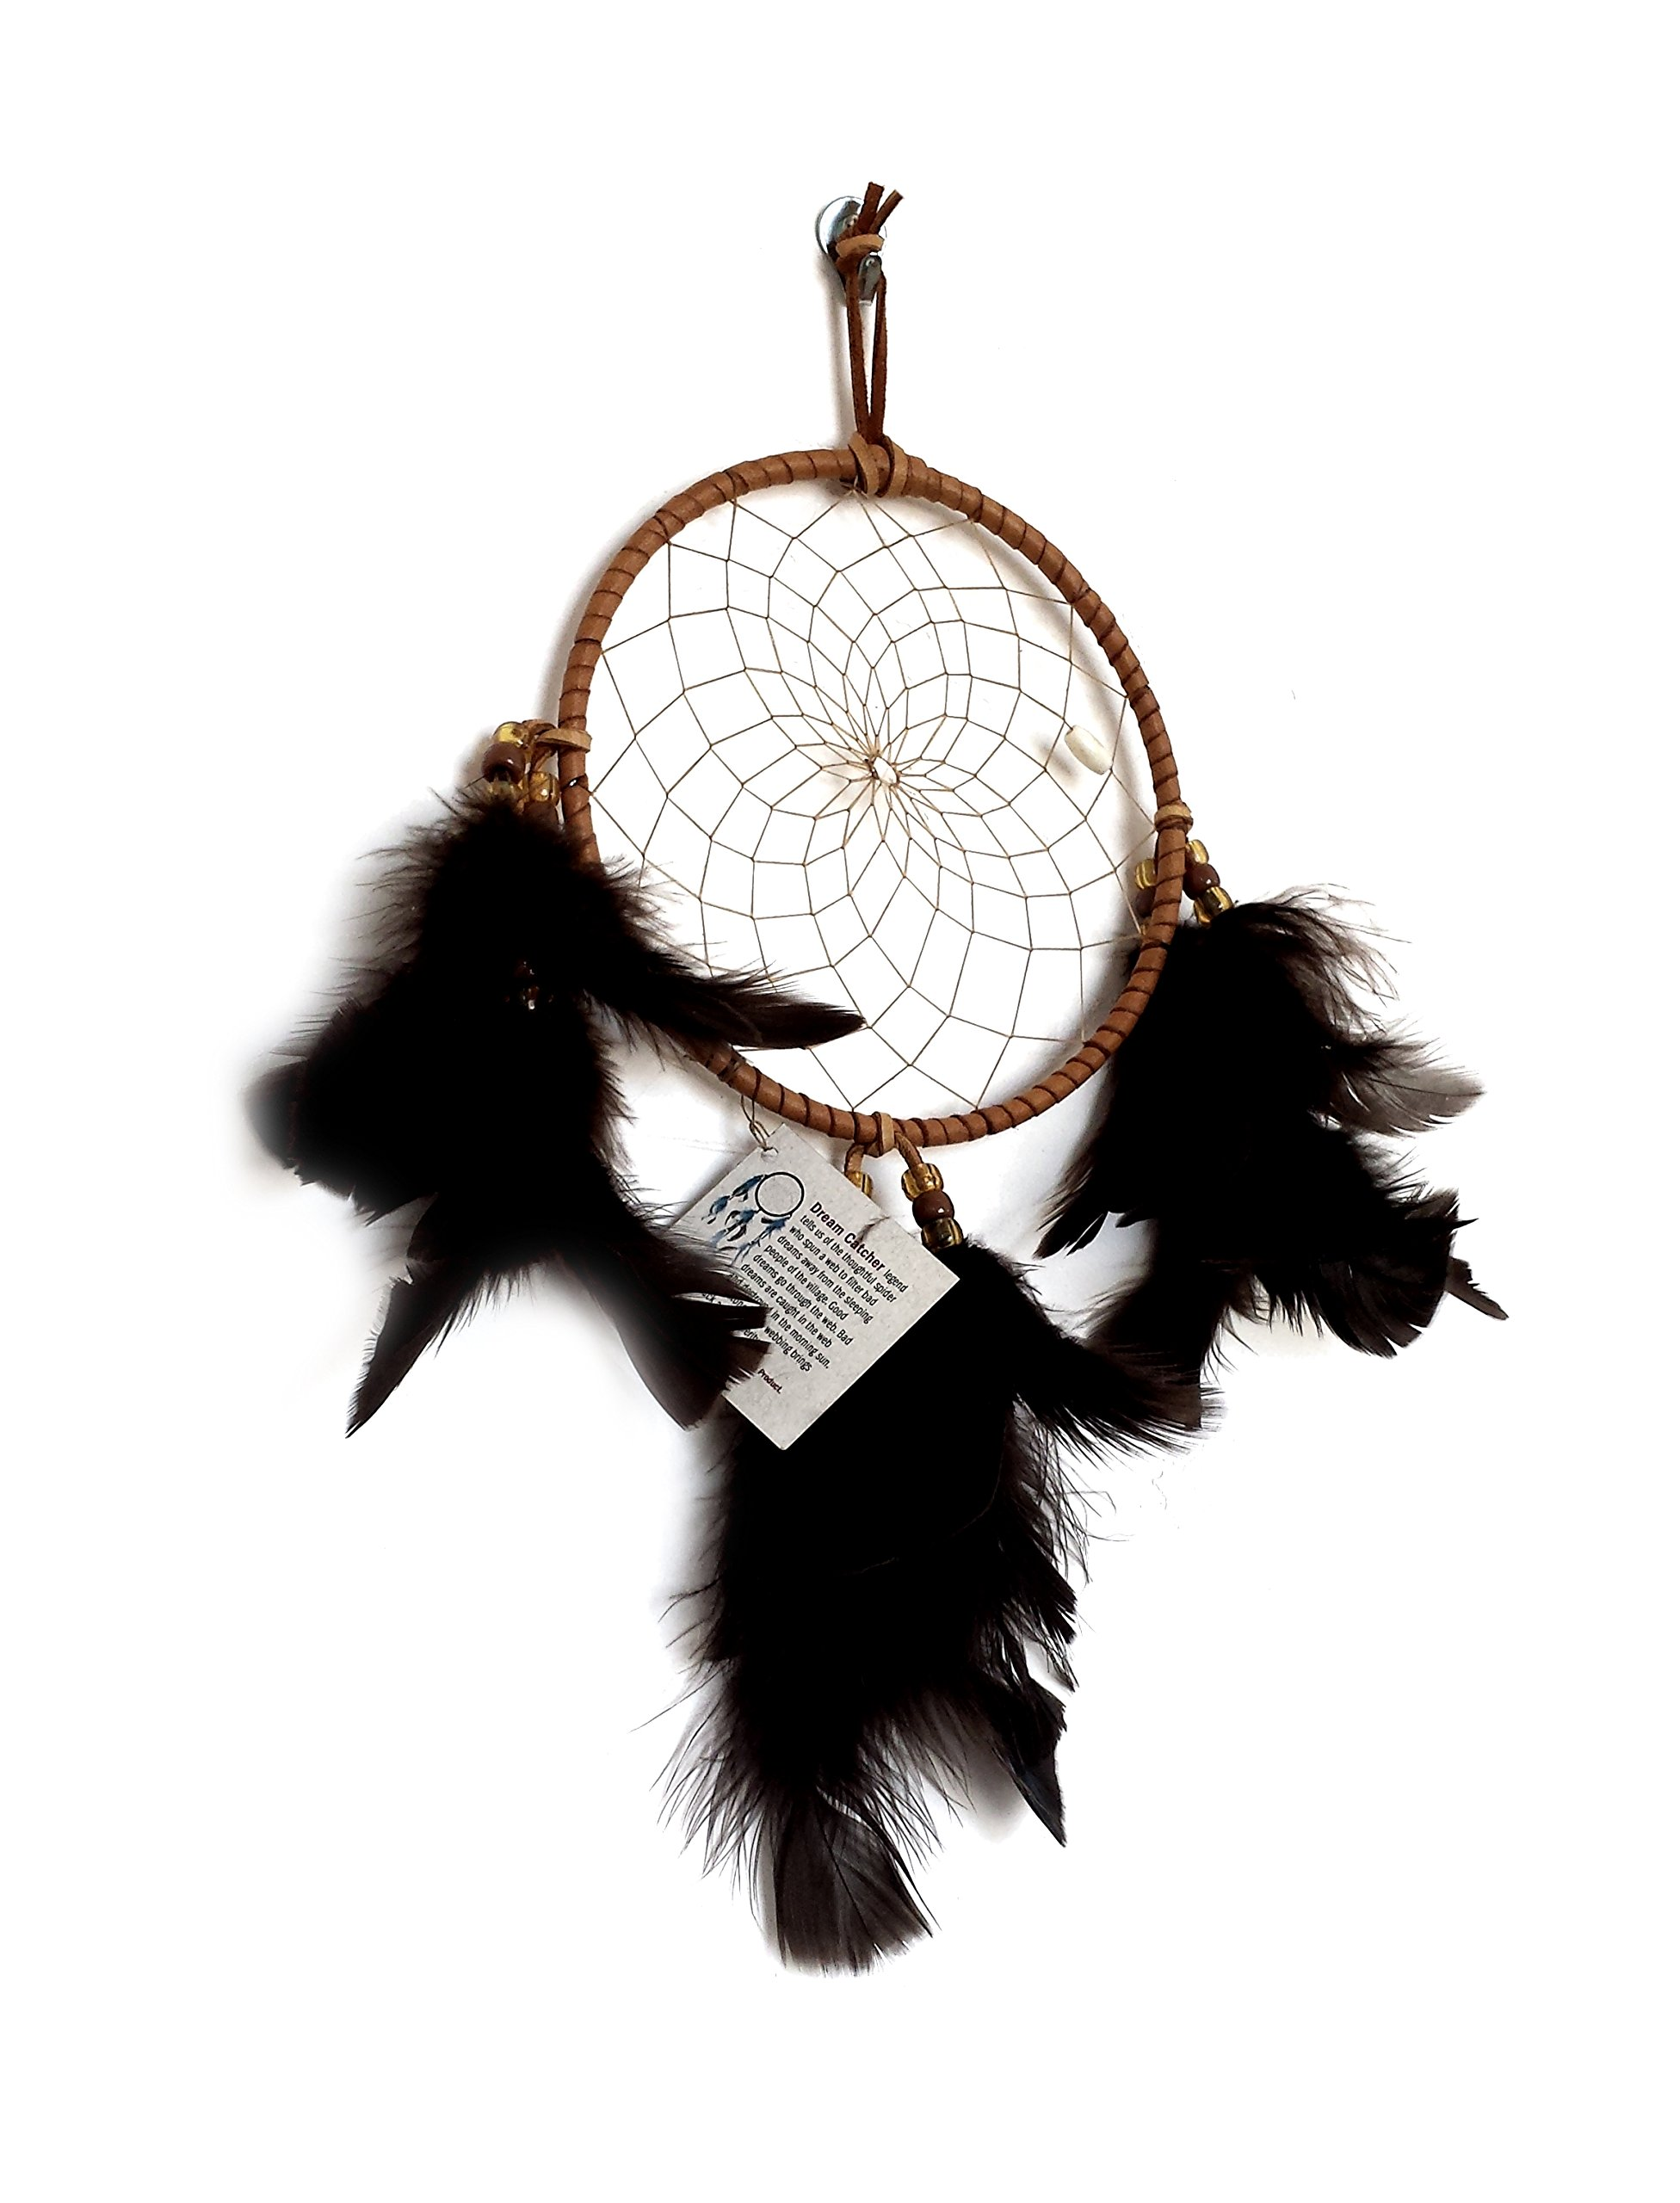 Dream Catcher - Authentic 6 inch Medium Hand Made Native American Indian Cherokee Dreamcatcher by NativeAmericanVault